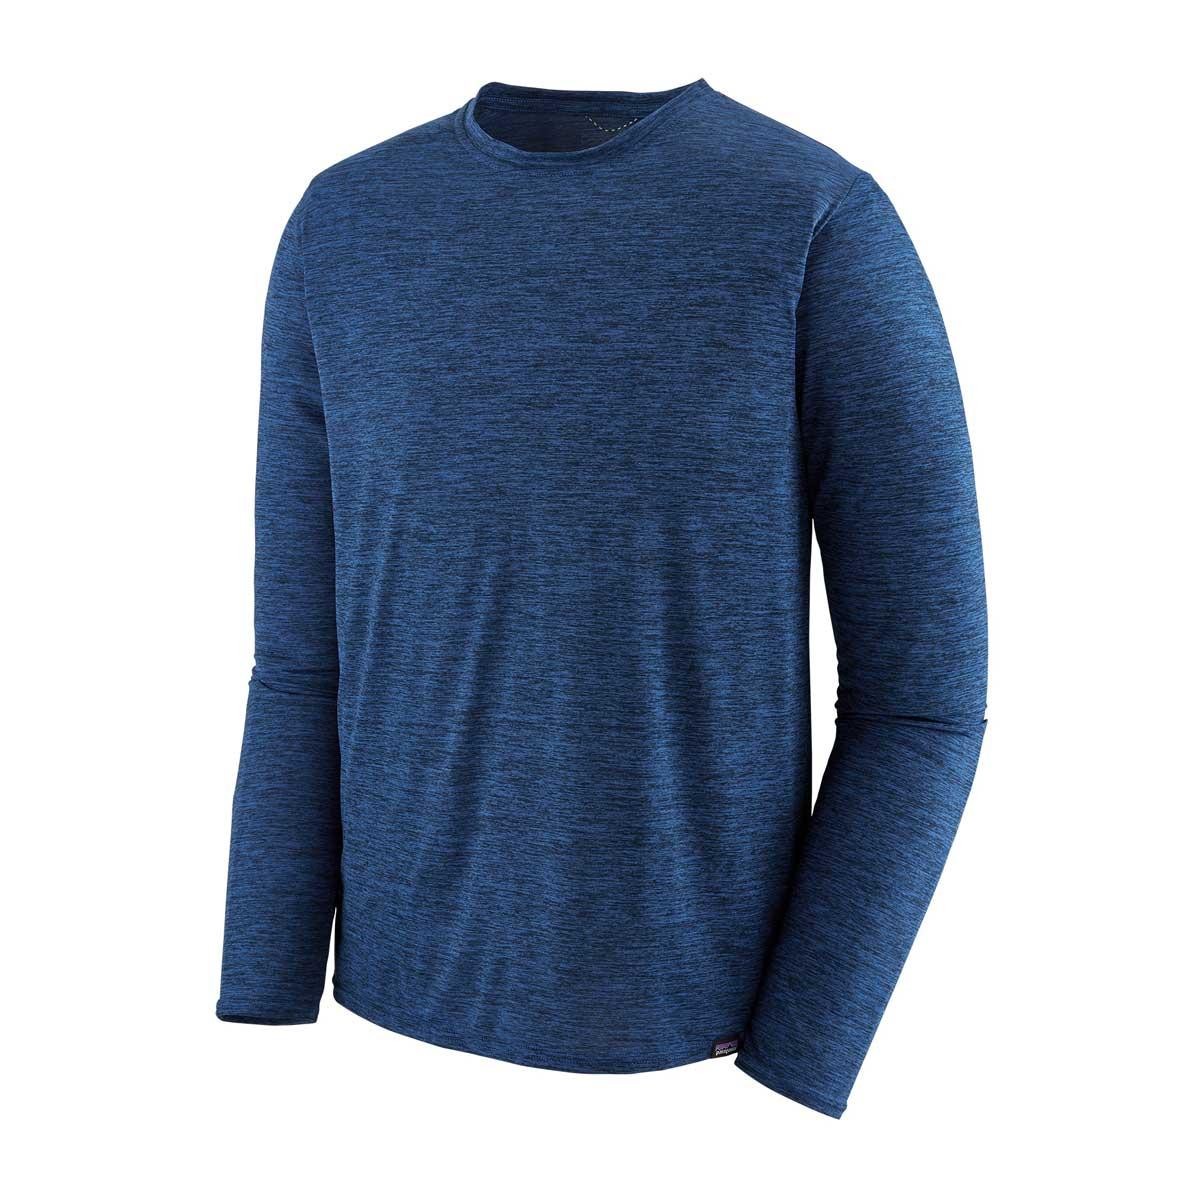 Patagonia men's Capilene Cool Daily long-sleeve shirt in heathered Viking Blue and Navy Blue